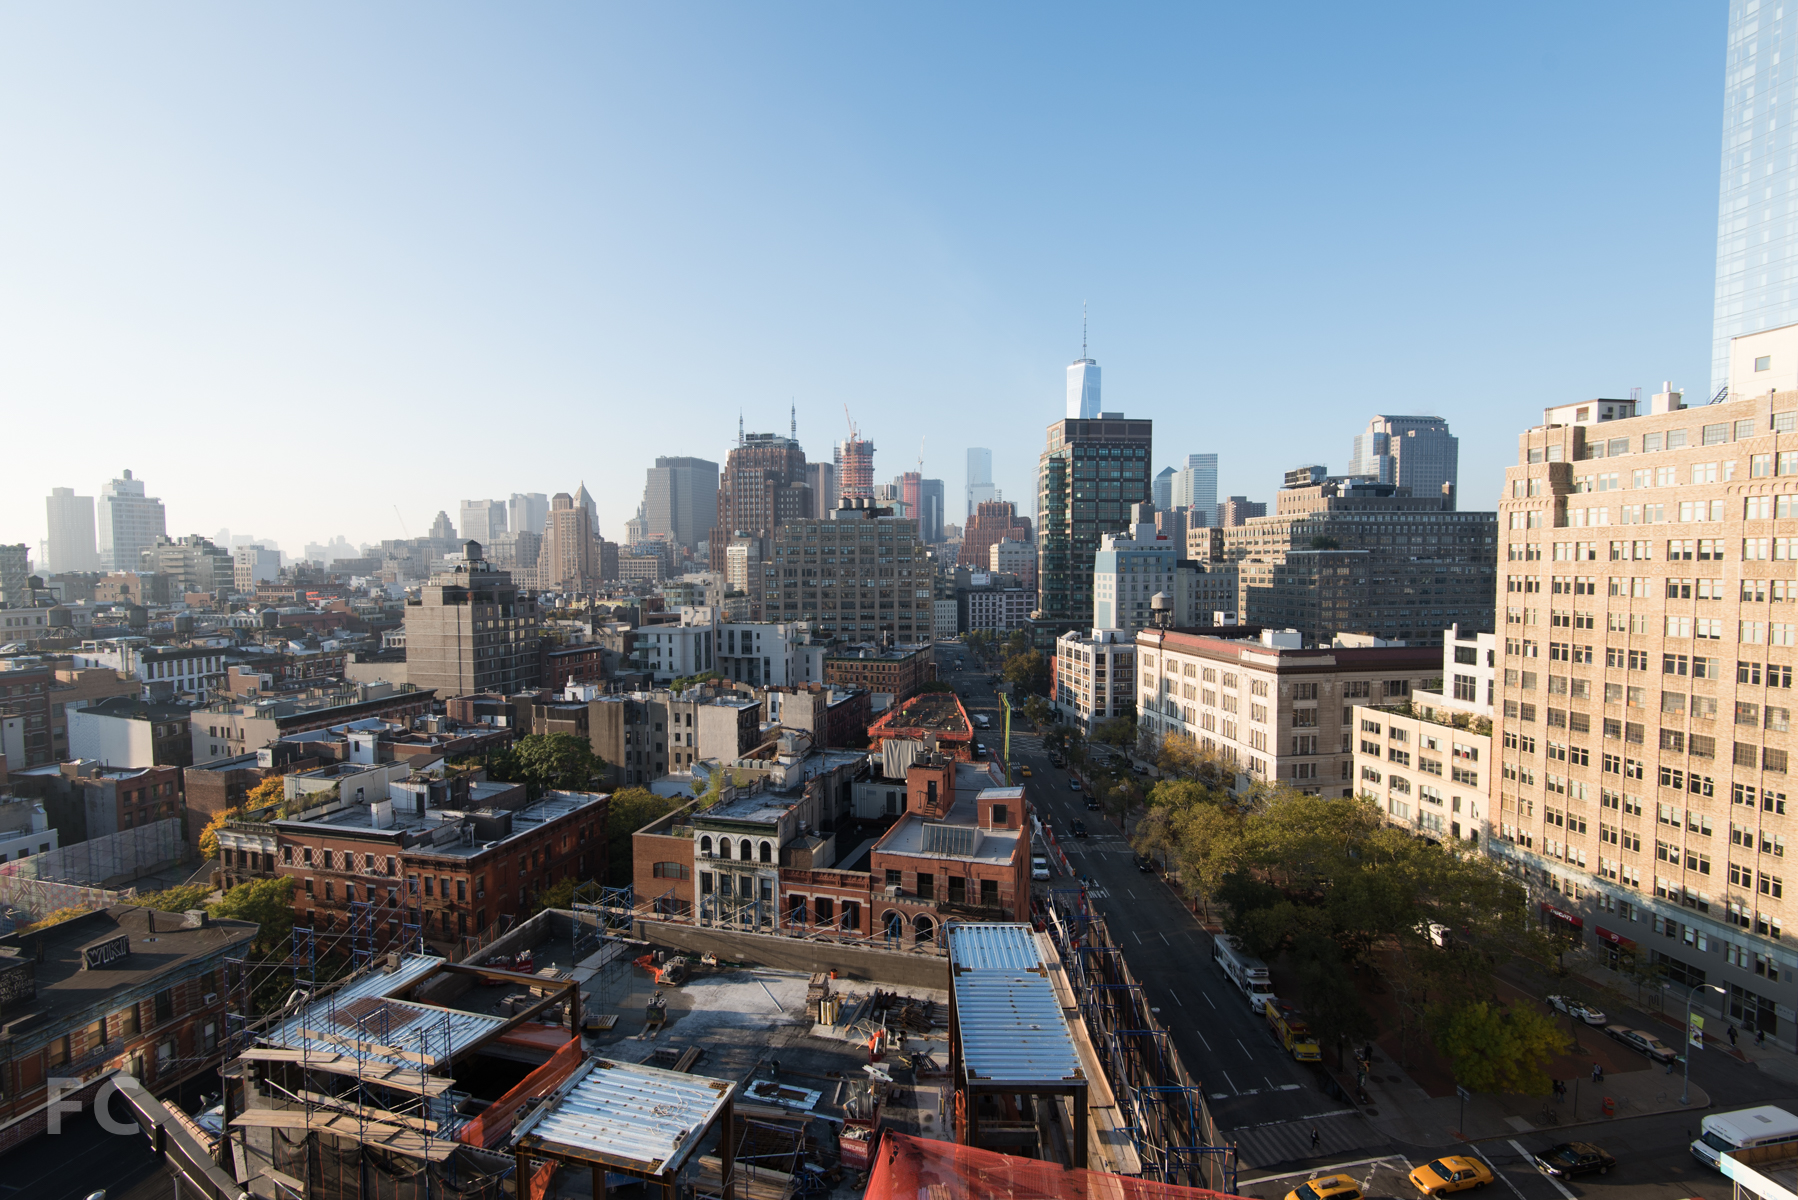 Looking south from the Penthouse A roof terrace, with 166 Avenue of the Americas (foreground) and Tamarkin's 10 Sullivan Street under construction. Construction on 56 Leonard and 30 Park Place is also visible in the distance.